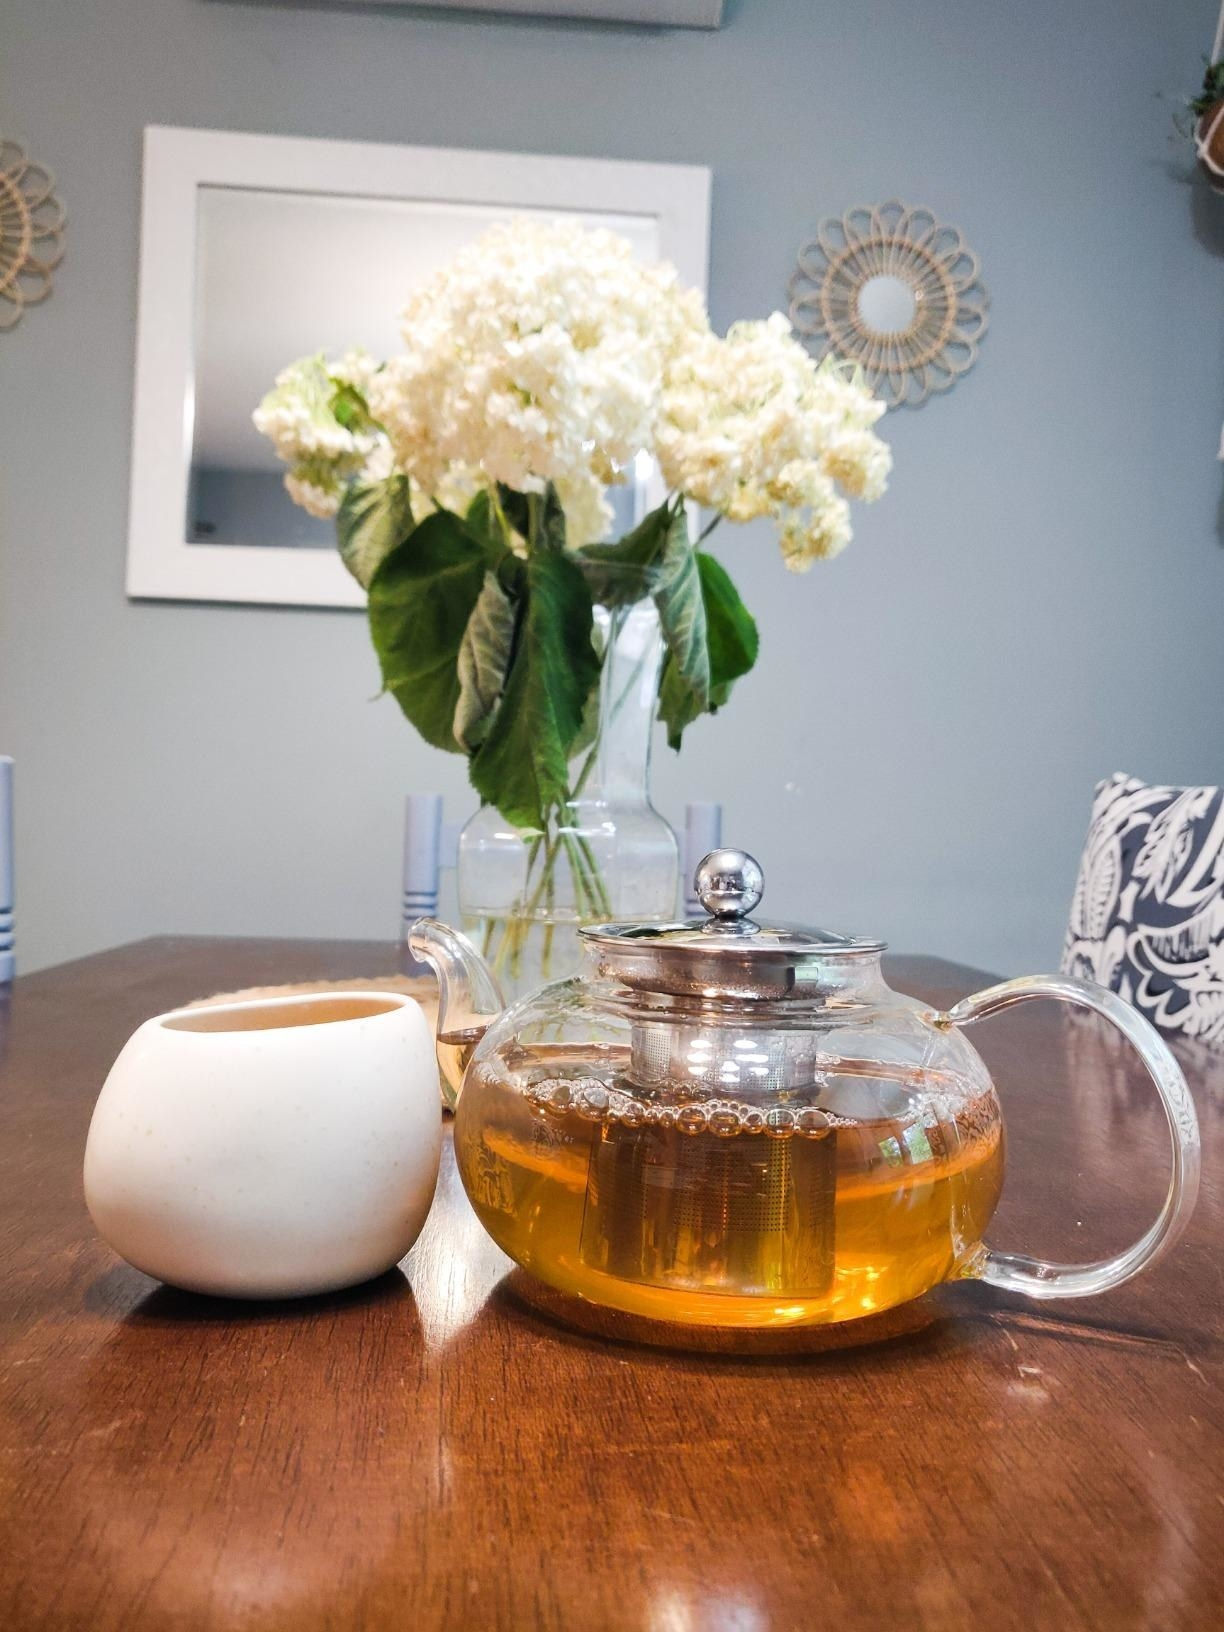 A reviewer showing the glass teapot with tea inside